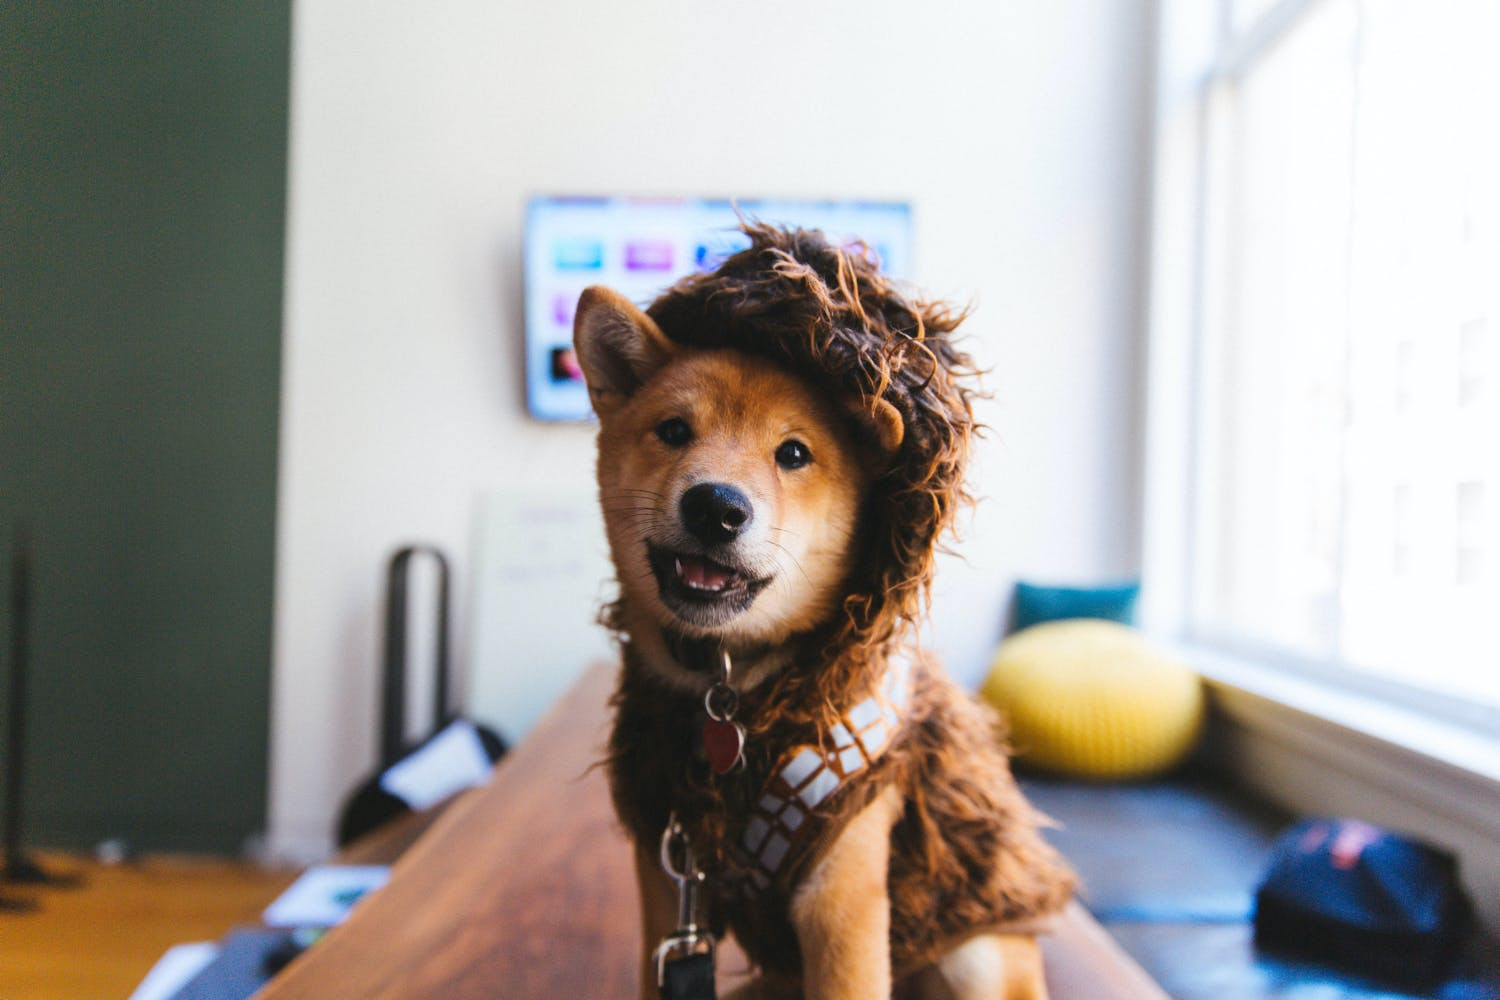 Dog in a wookiee costume